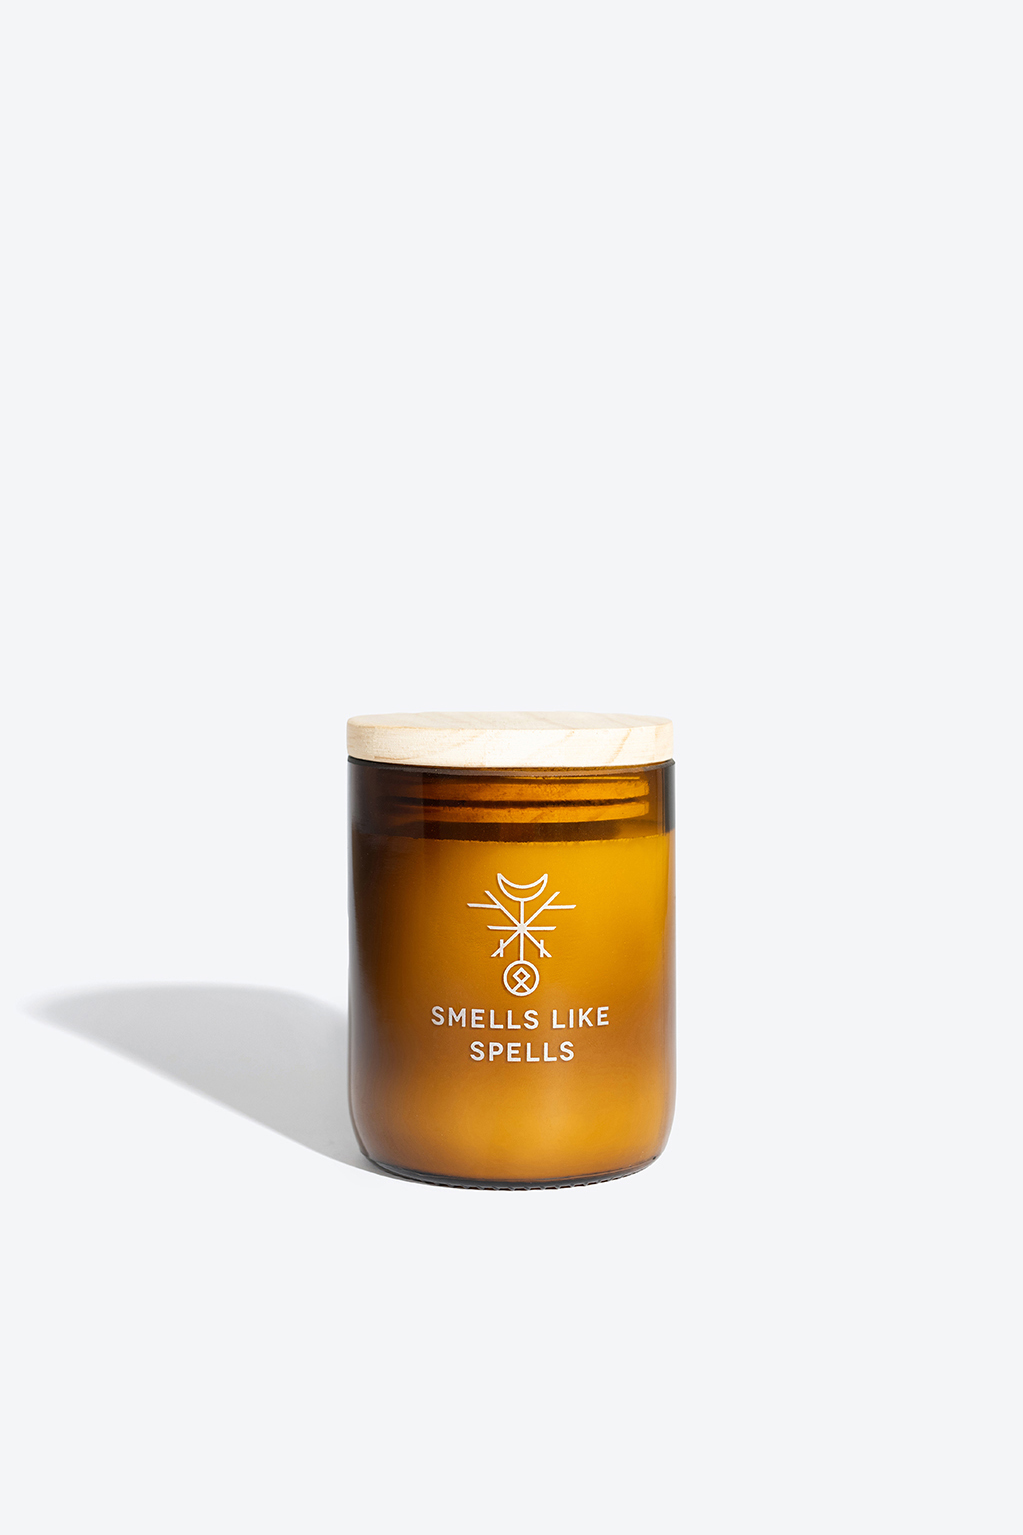 SMELLS LIKESPELLS Scented candle HEIMDALLR